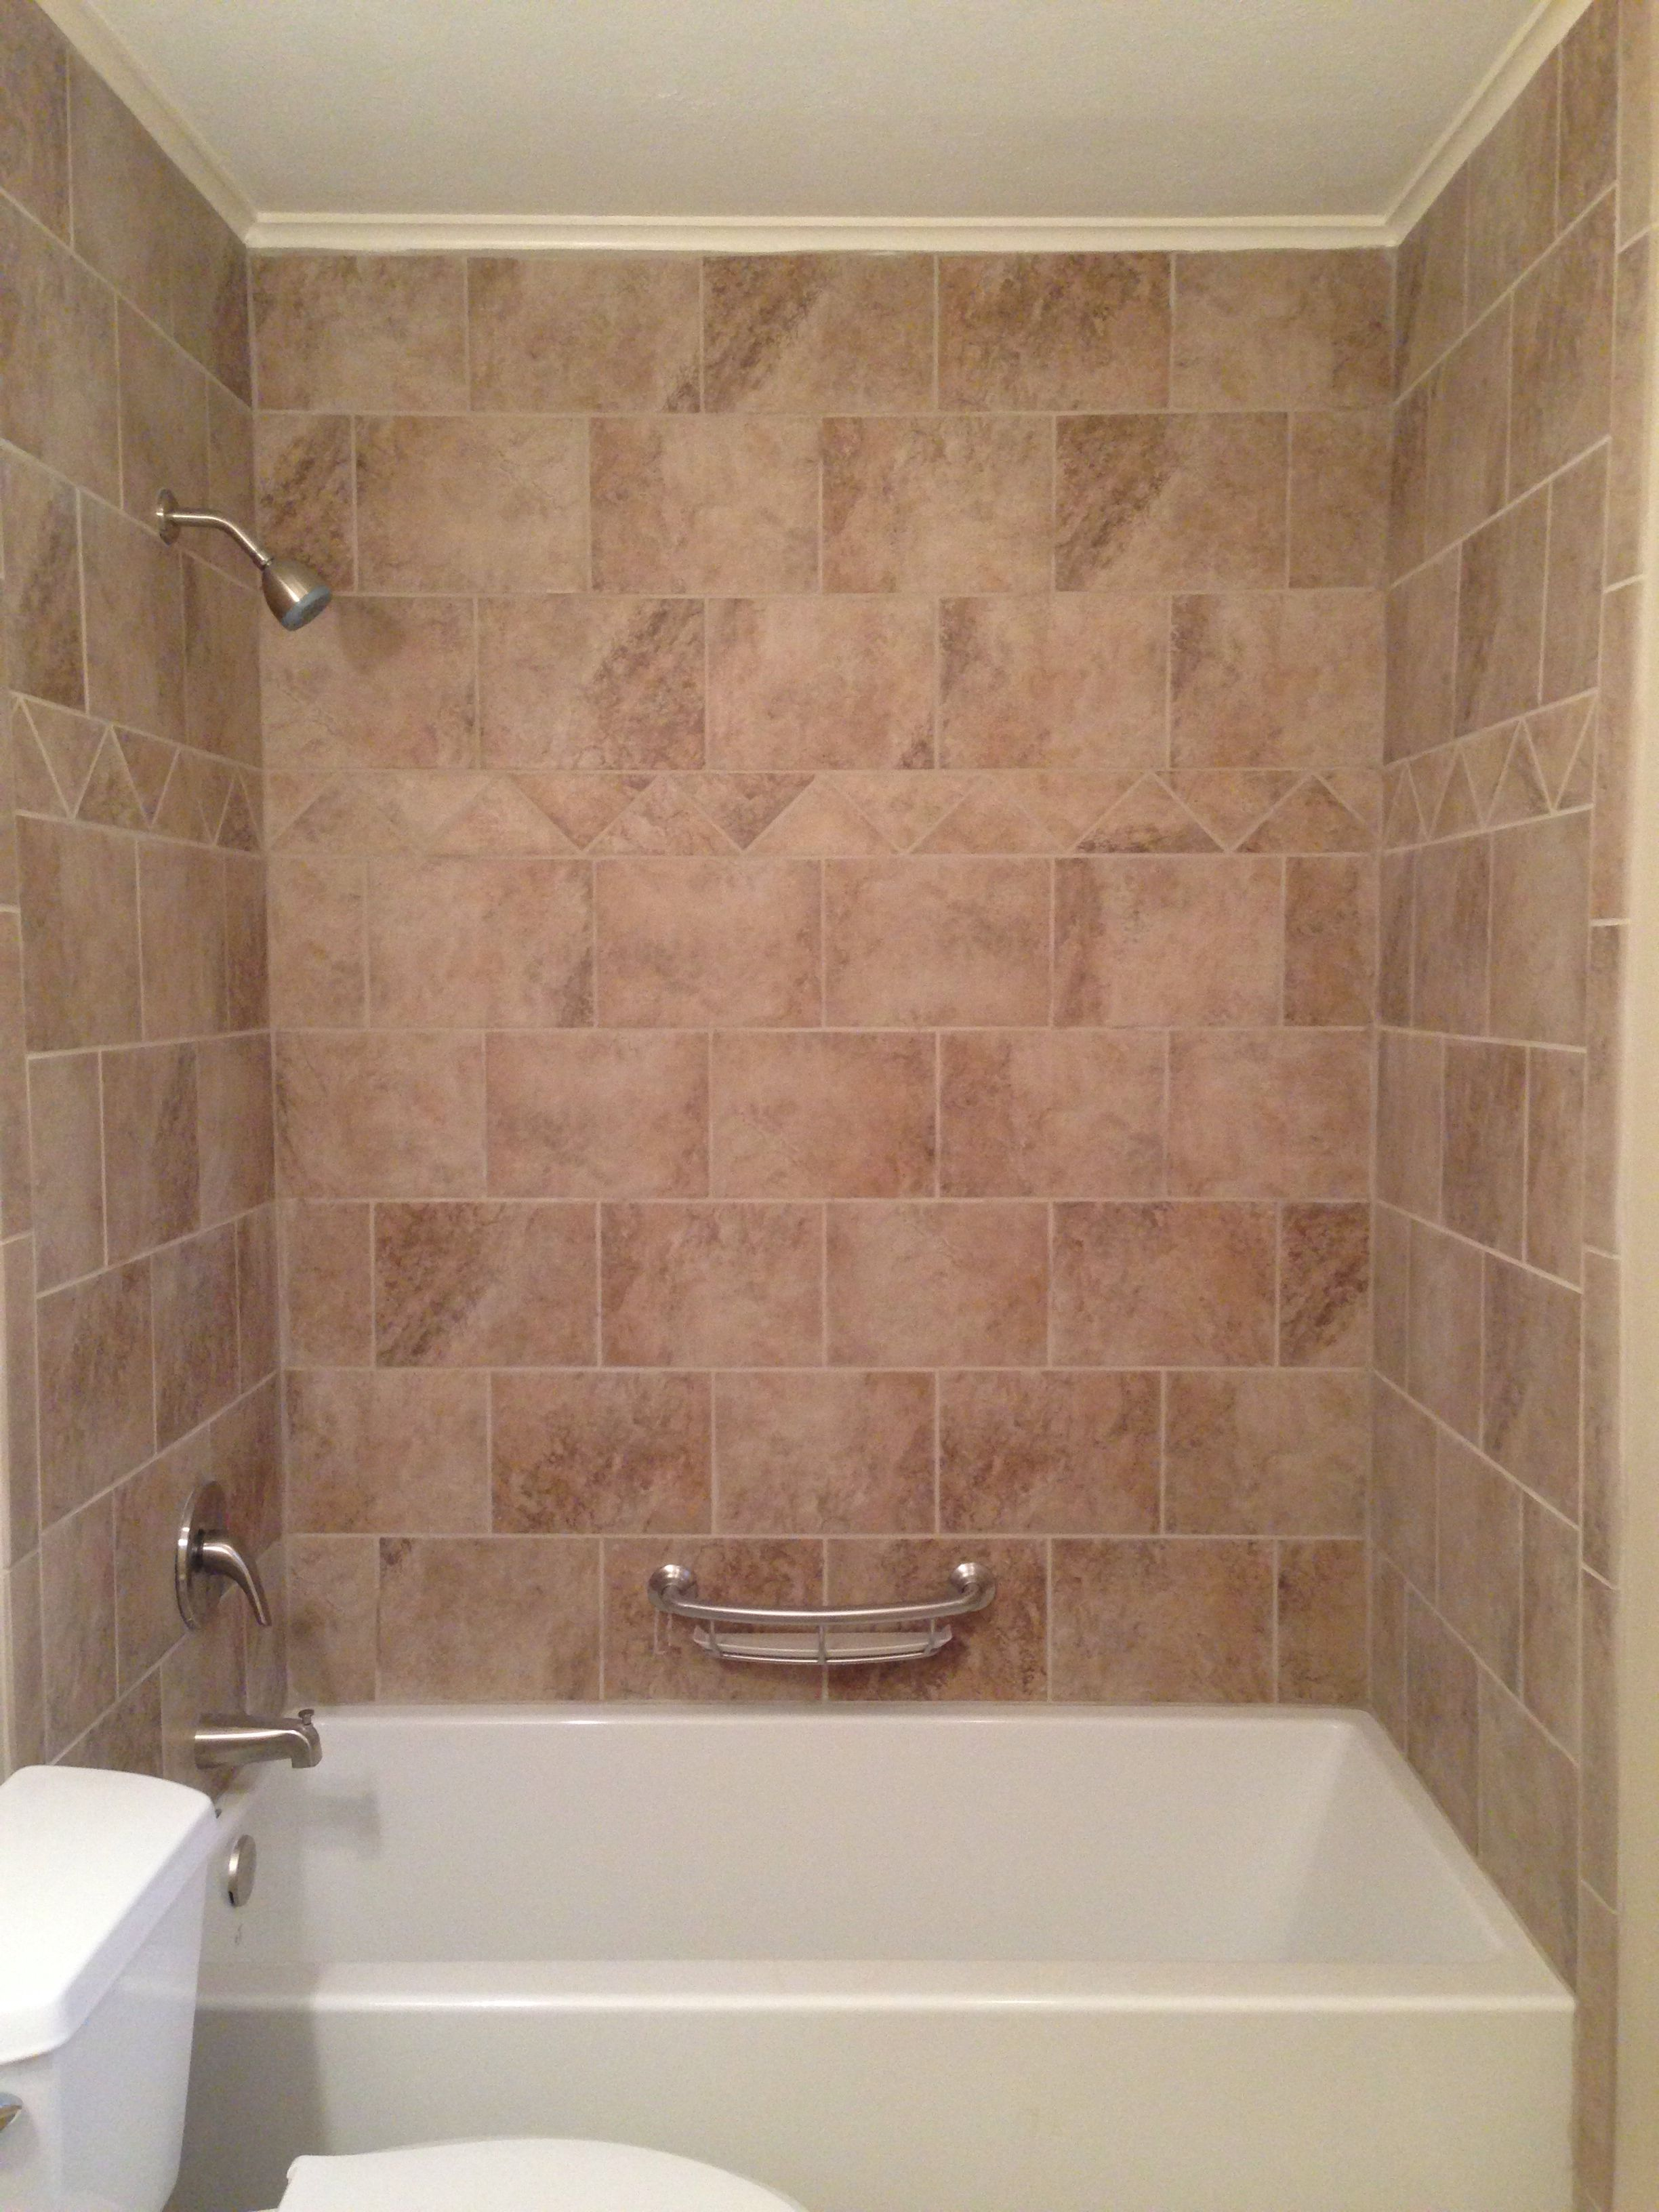 Tile surround bathtub. Beige tile around bathtub. | Our Tile Showers ...